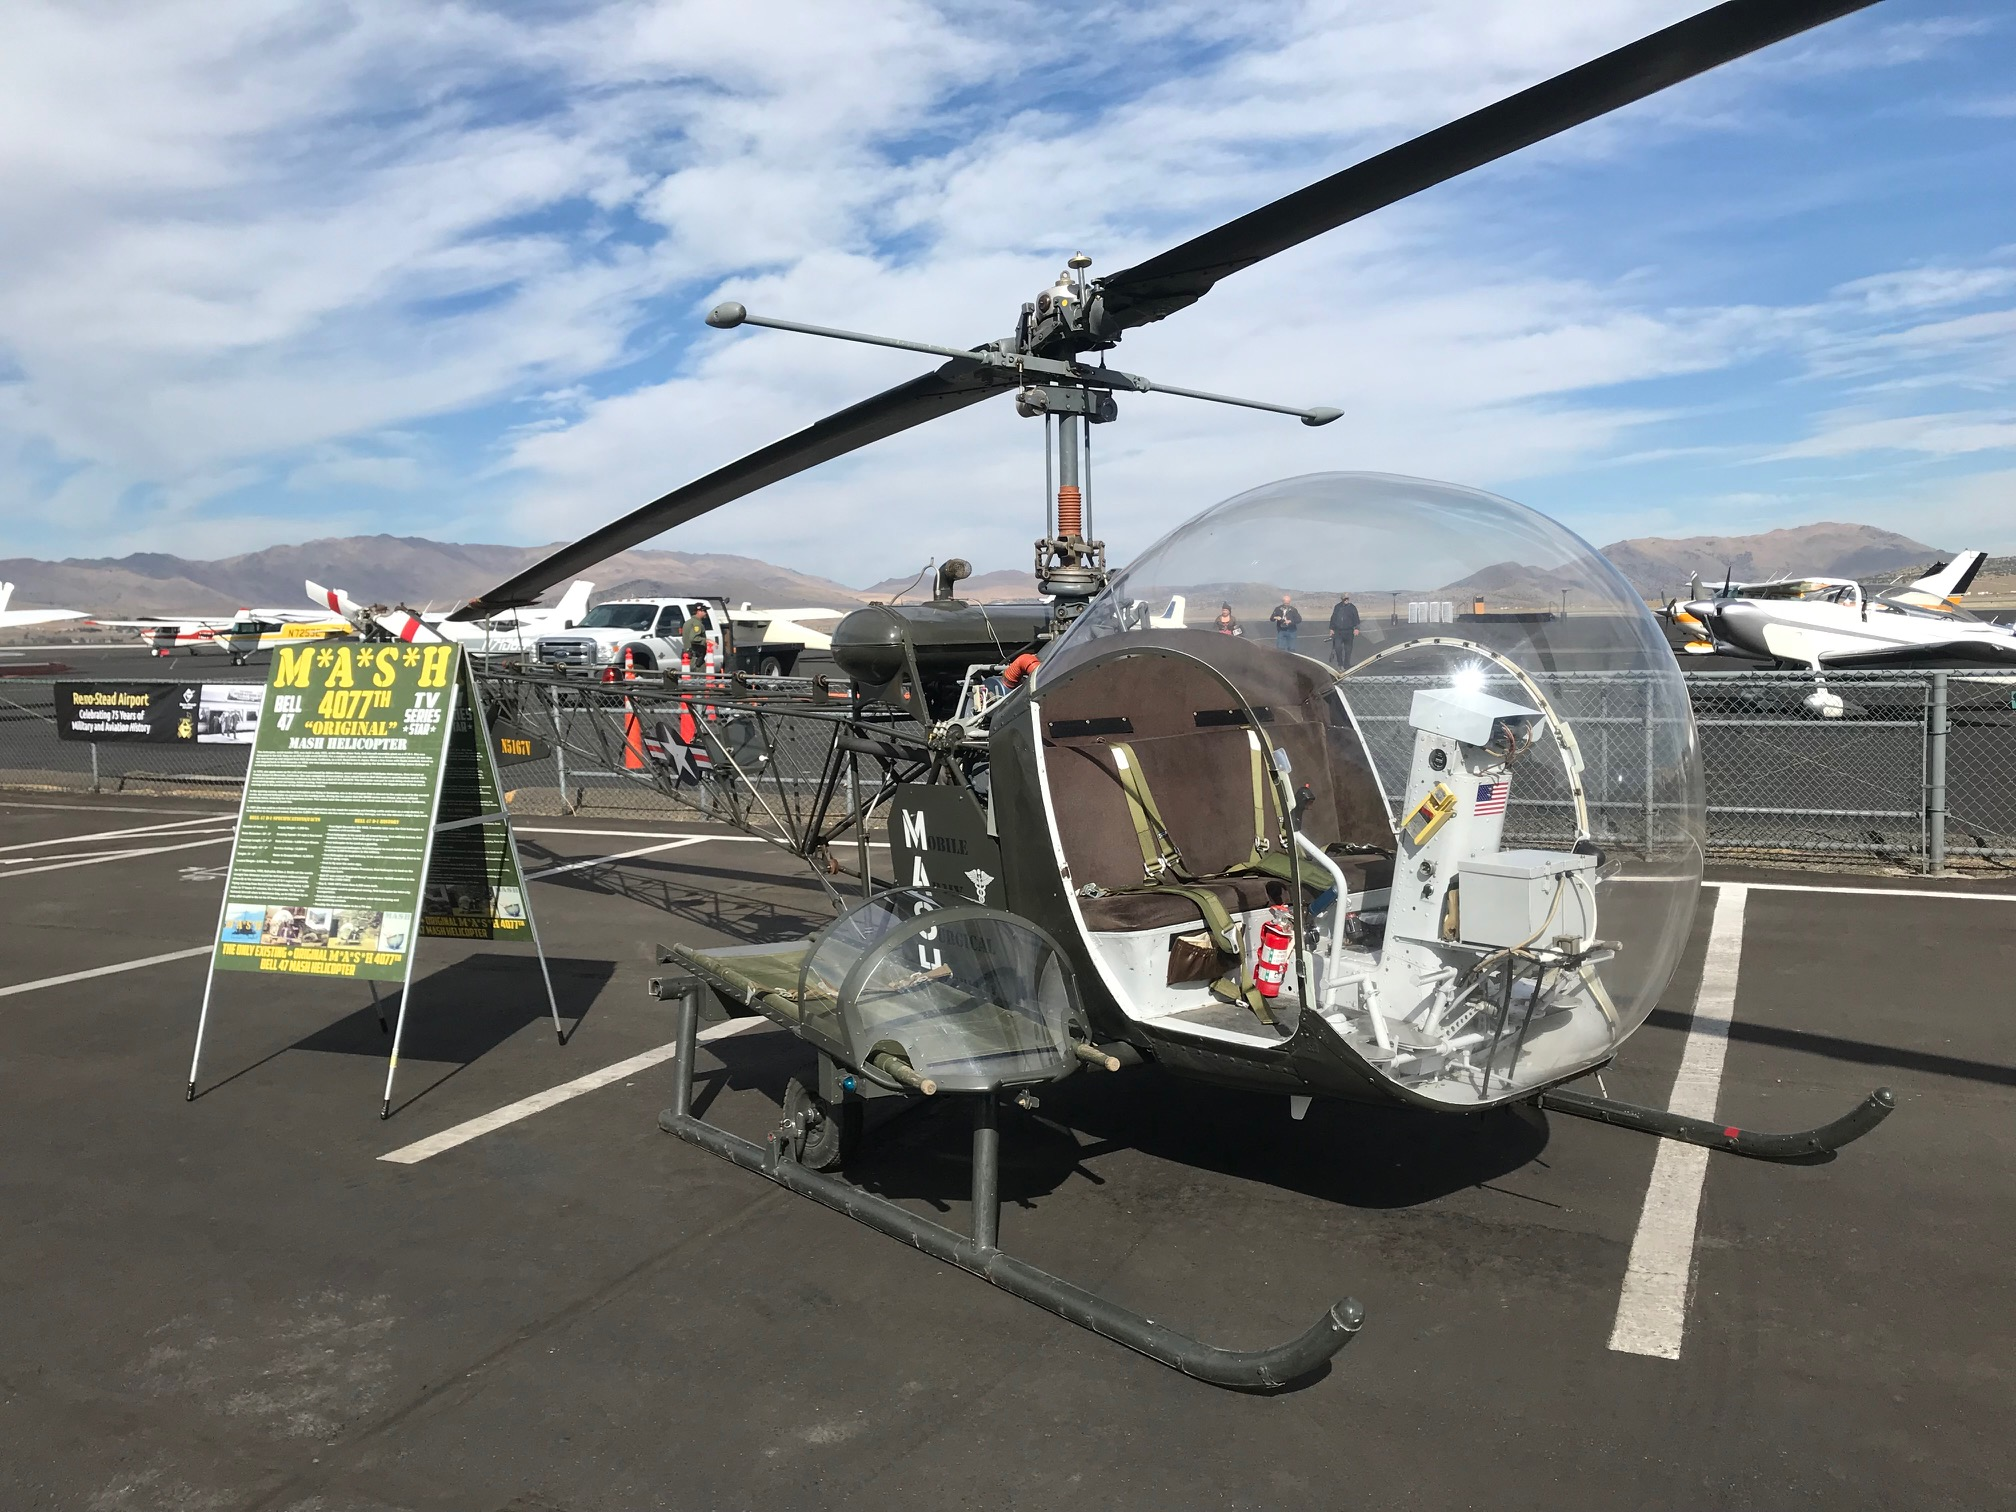 1951 M.A.S.H Bell 47